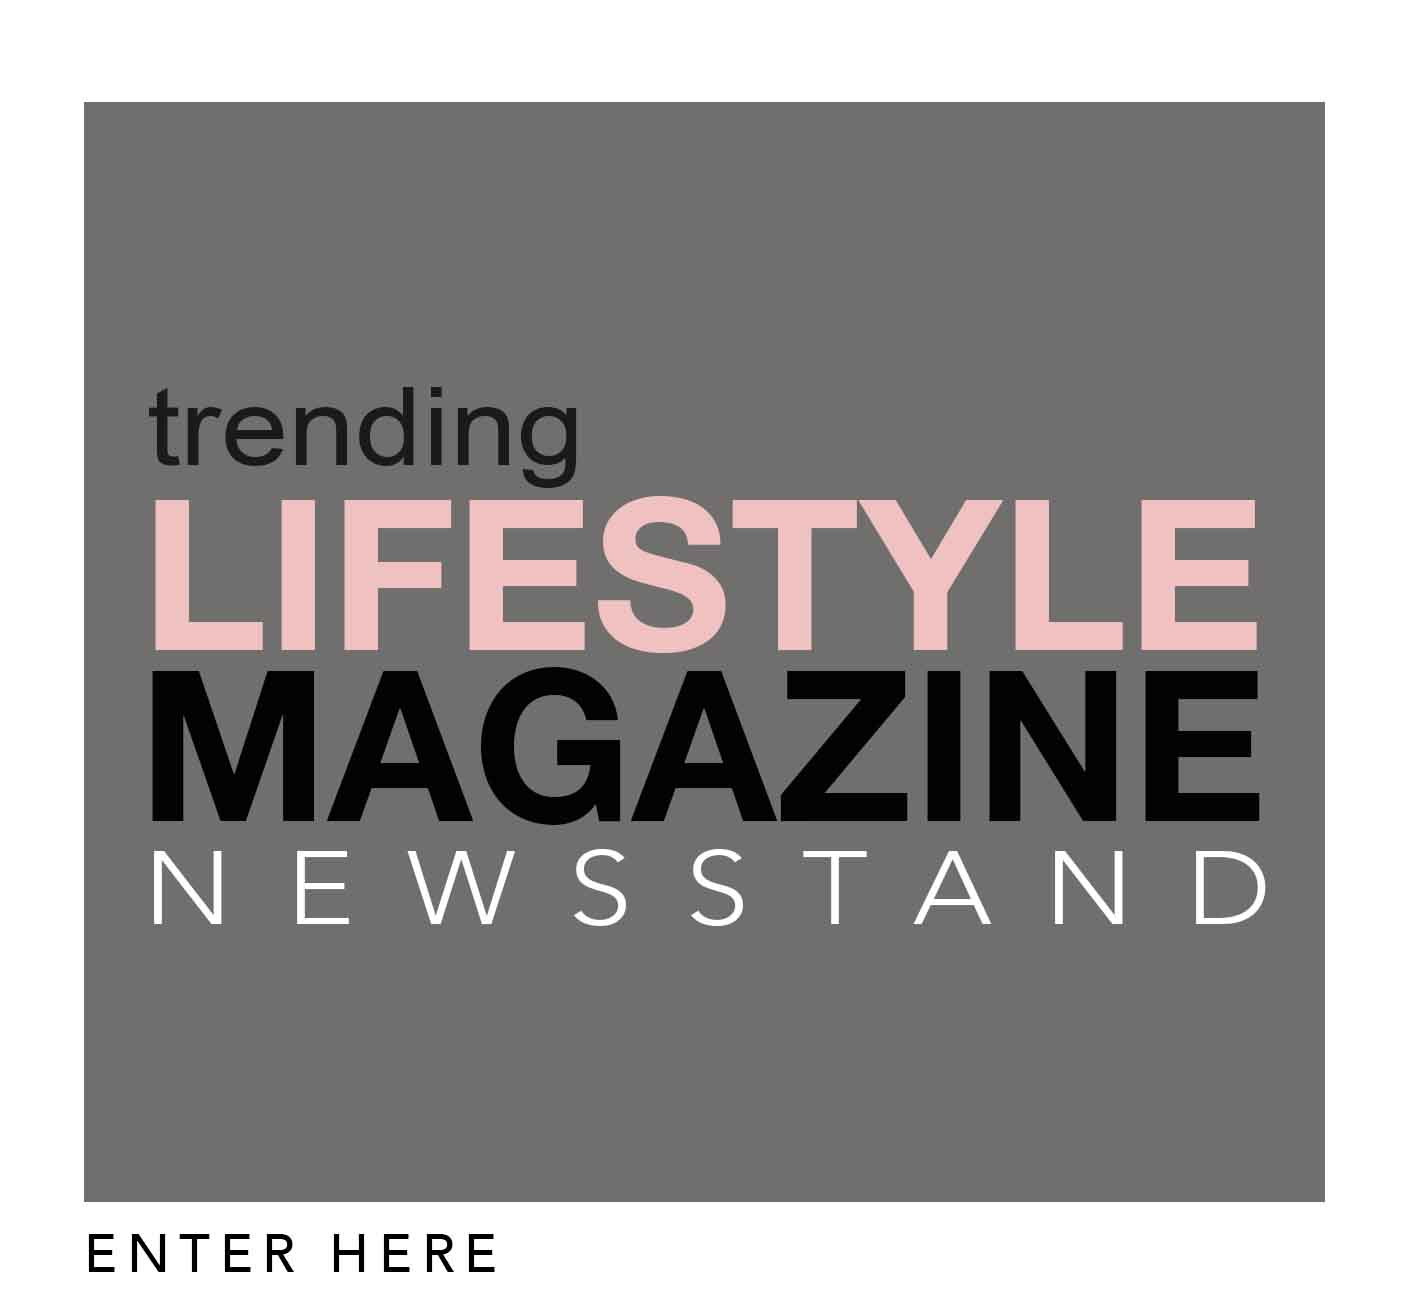 VISIT-THE-NEWSSTAND-BANNER - TRENDING-LIFESTYLE-NEWSSTAND